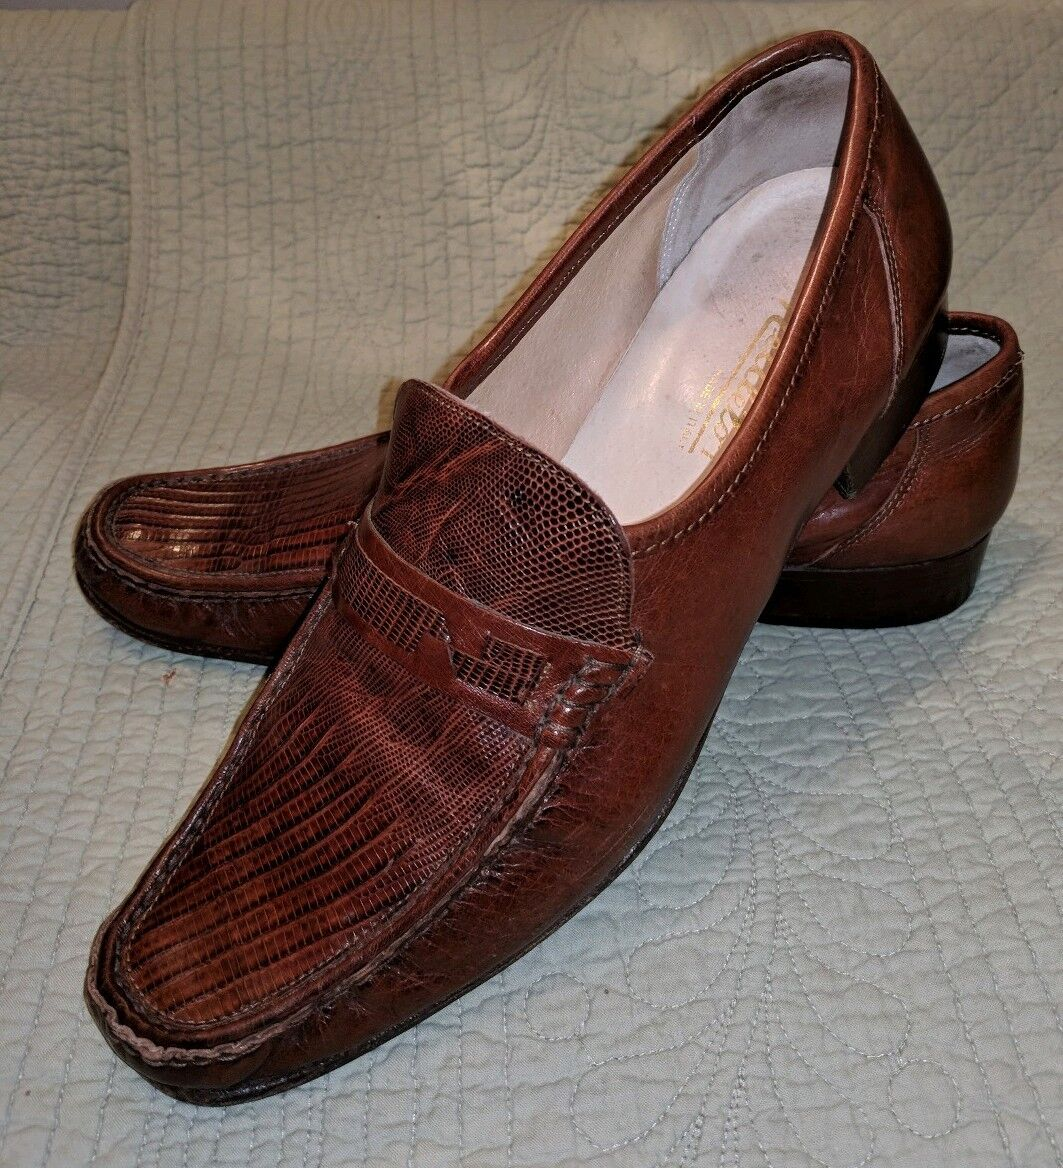 VINTAGE NETTLETON ITALY AUTH LIZARD SKIN LOAFERS SLIP ON SHOES BROWN REPTILE 11